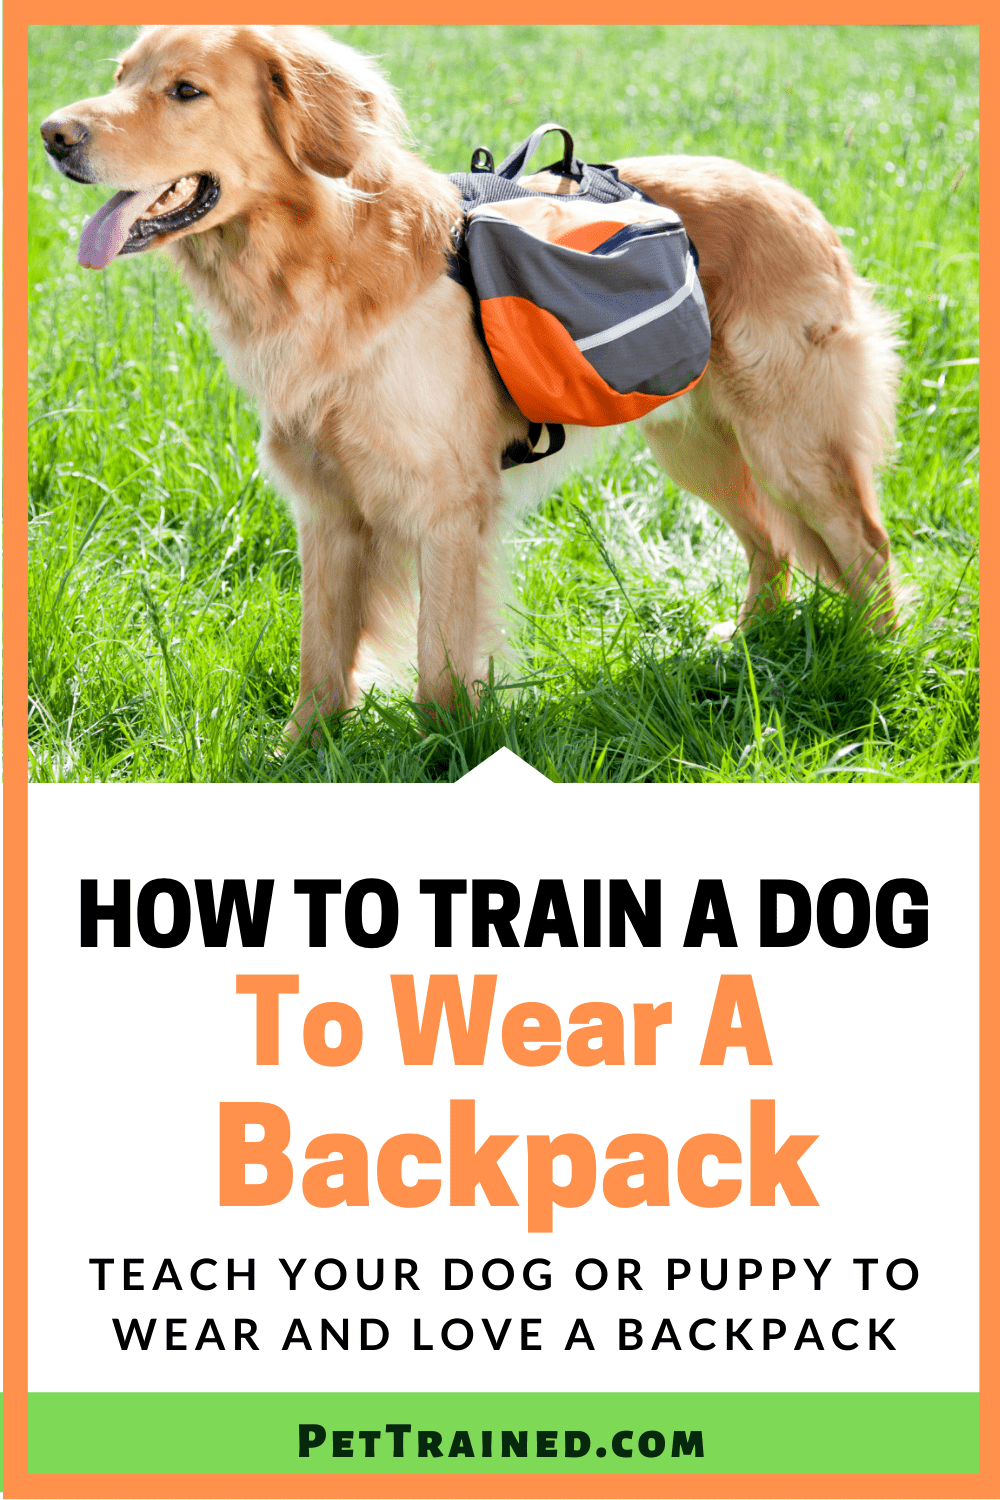 How to train a puppy to wear a backpack from today